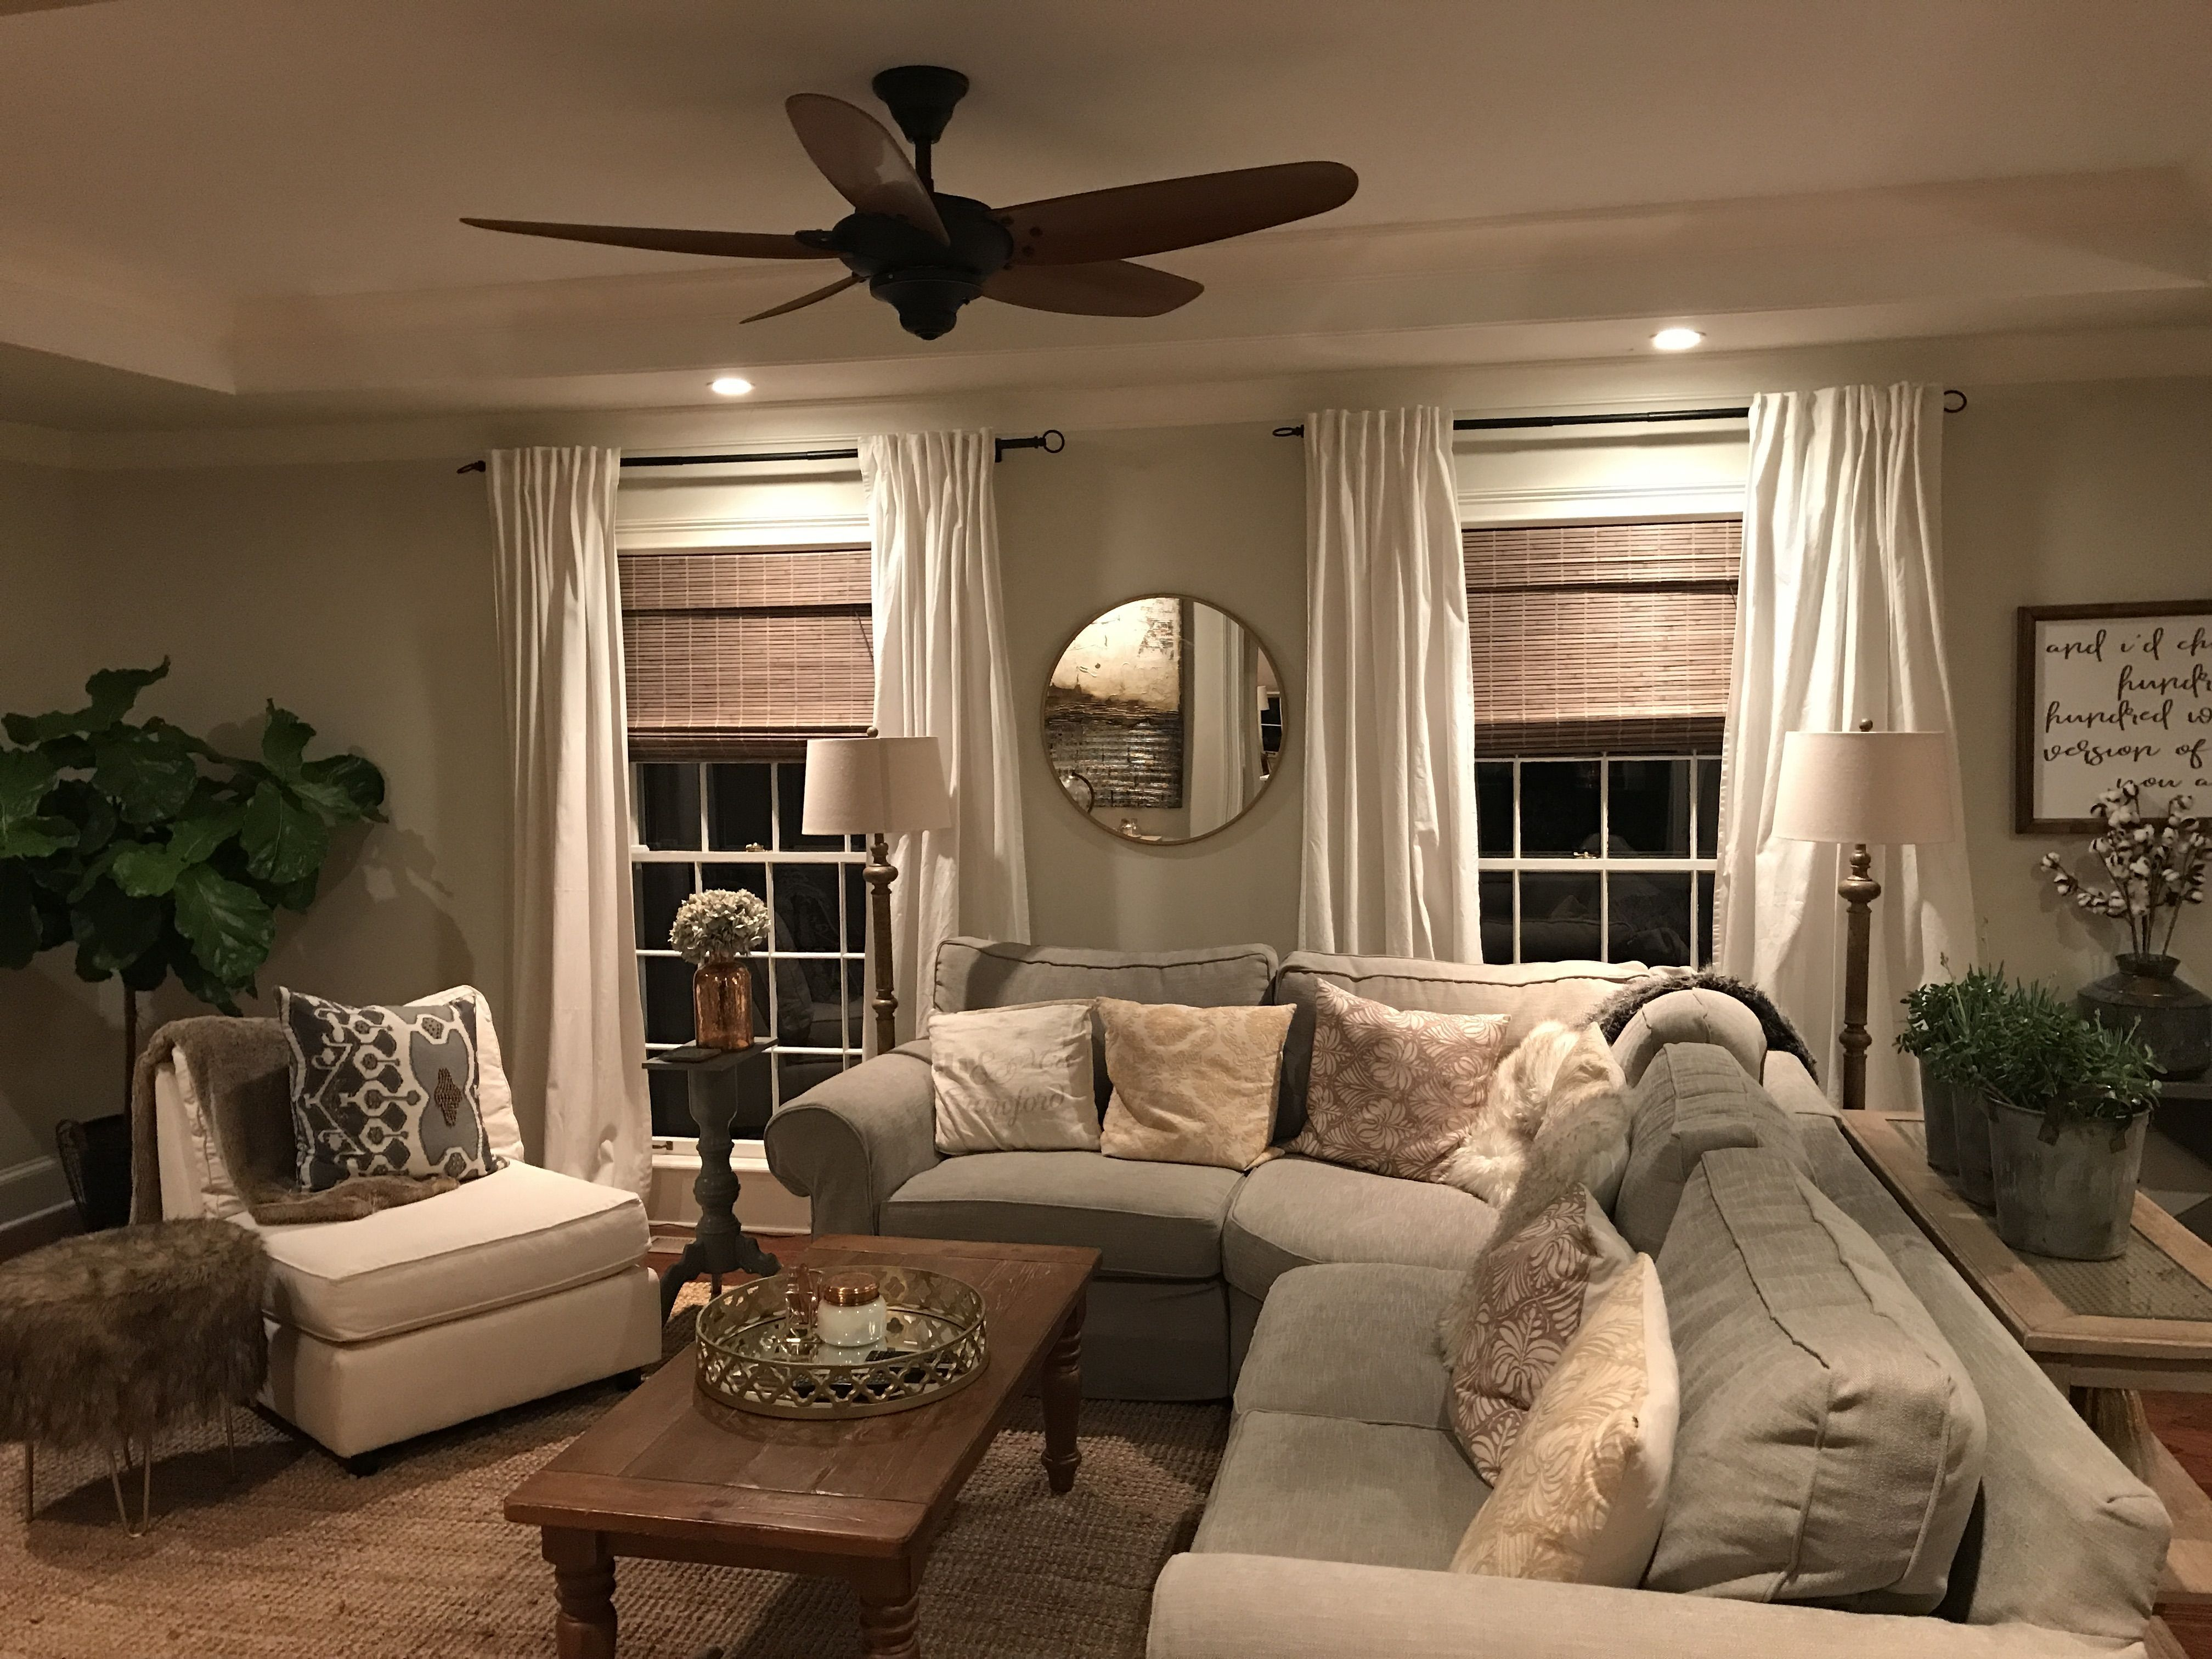 Cozy Modern Farmhouse Family Room With A Natural Jute Rug Grey Captivating Cozy Modern Living Room Decorating Design